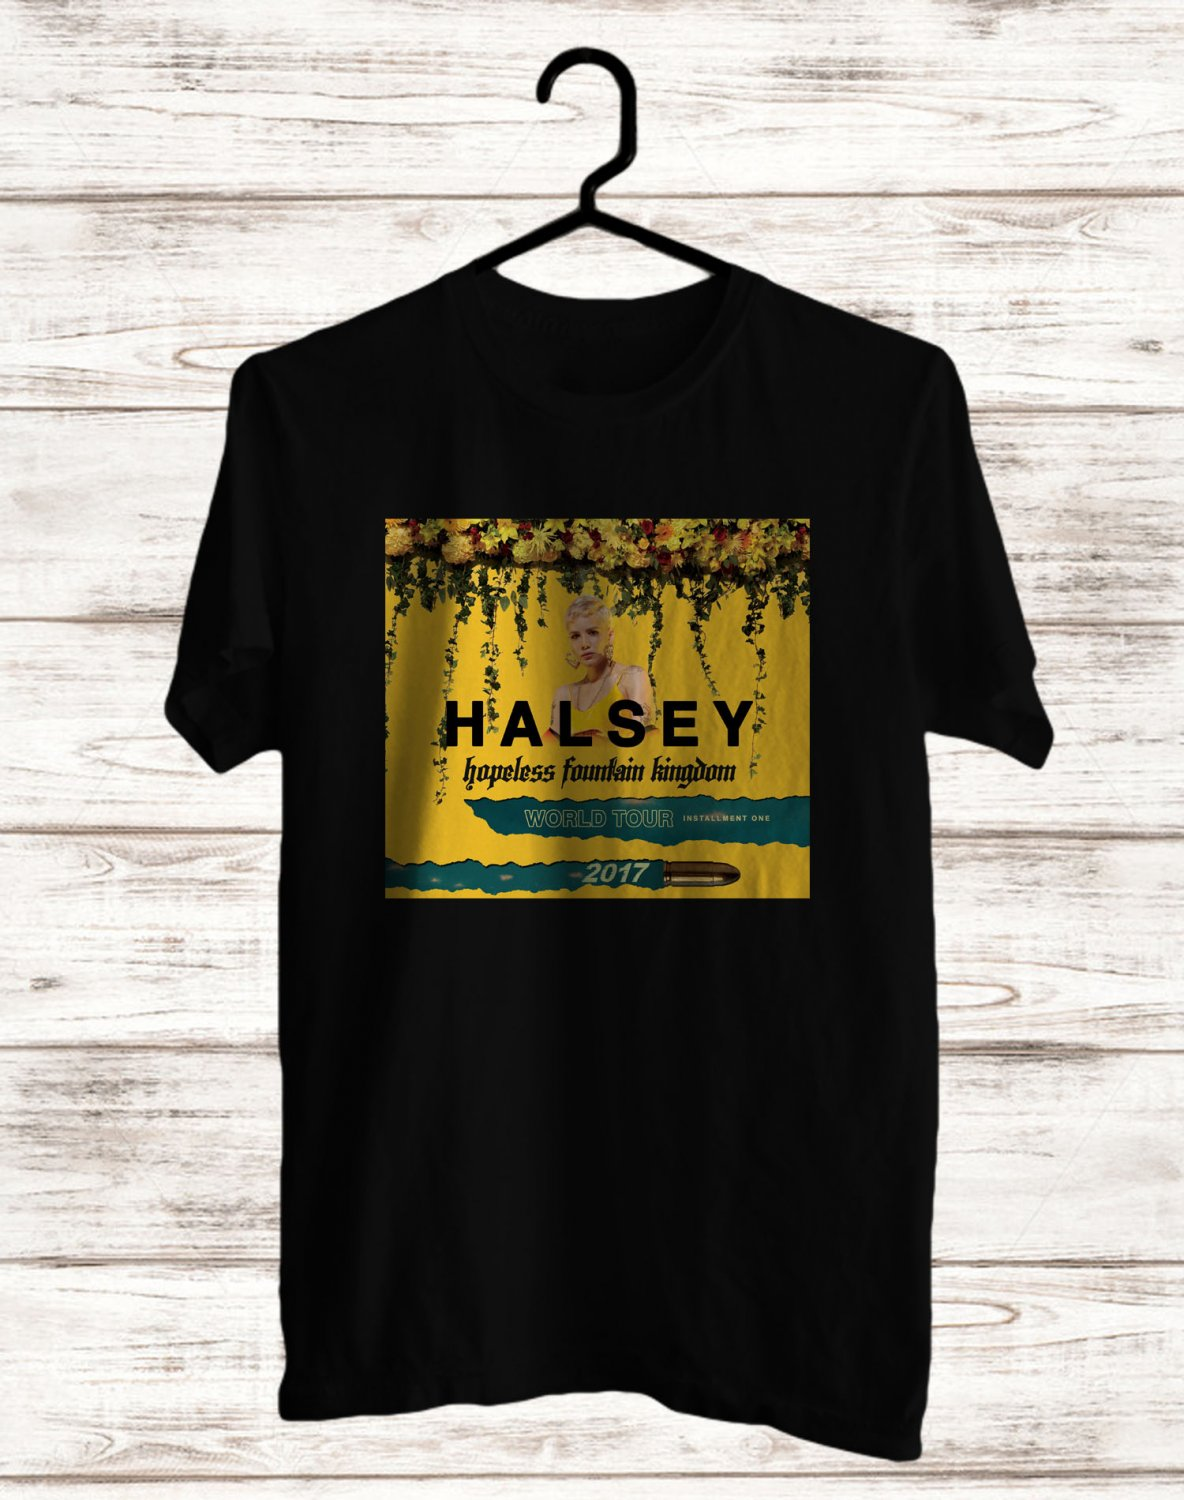 Halsey hopeless Fountain Kingdom Tour 2017 Black Tee's Front Side by Complexart z1